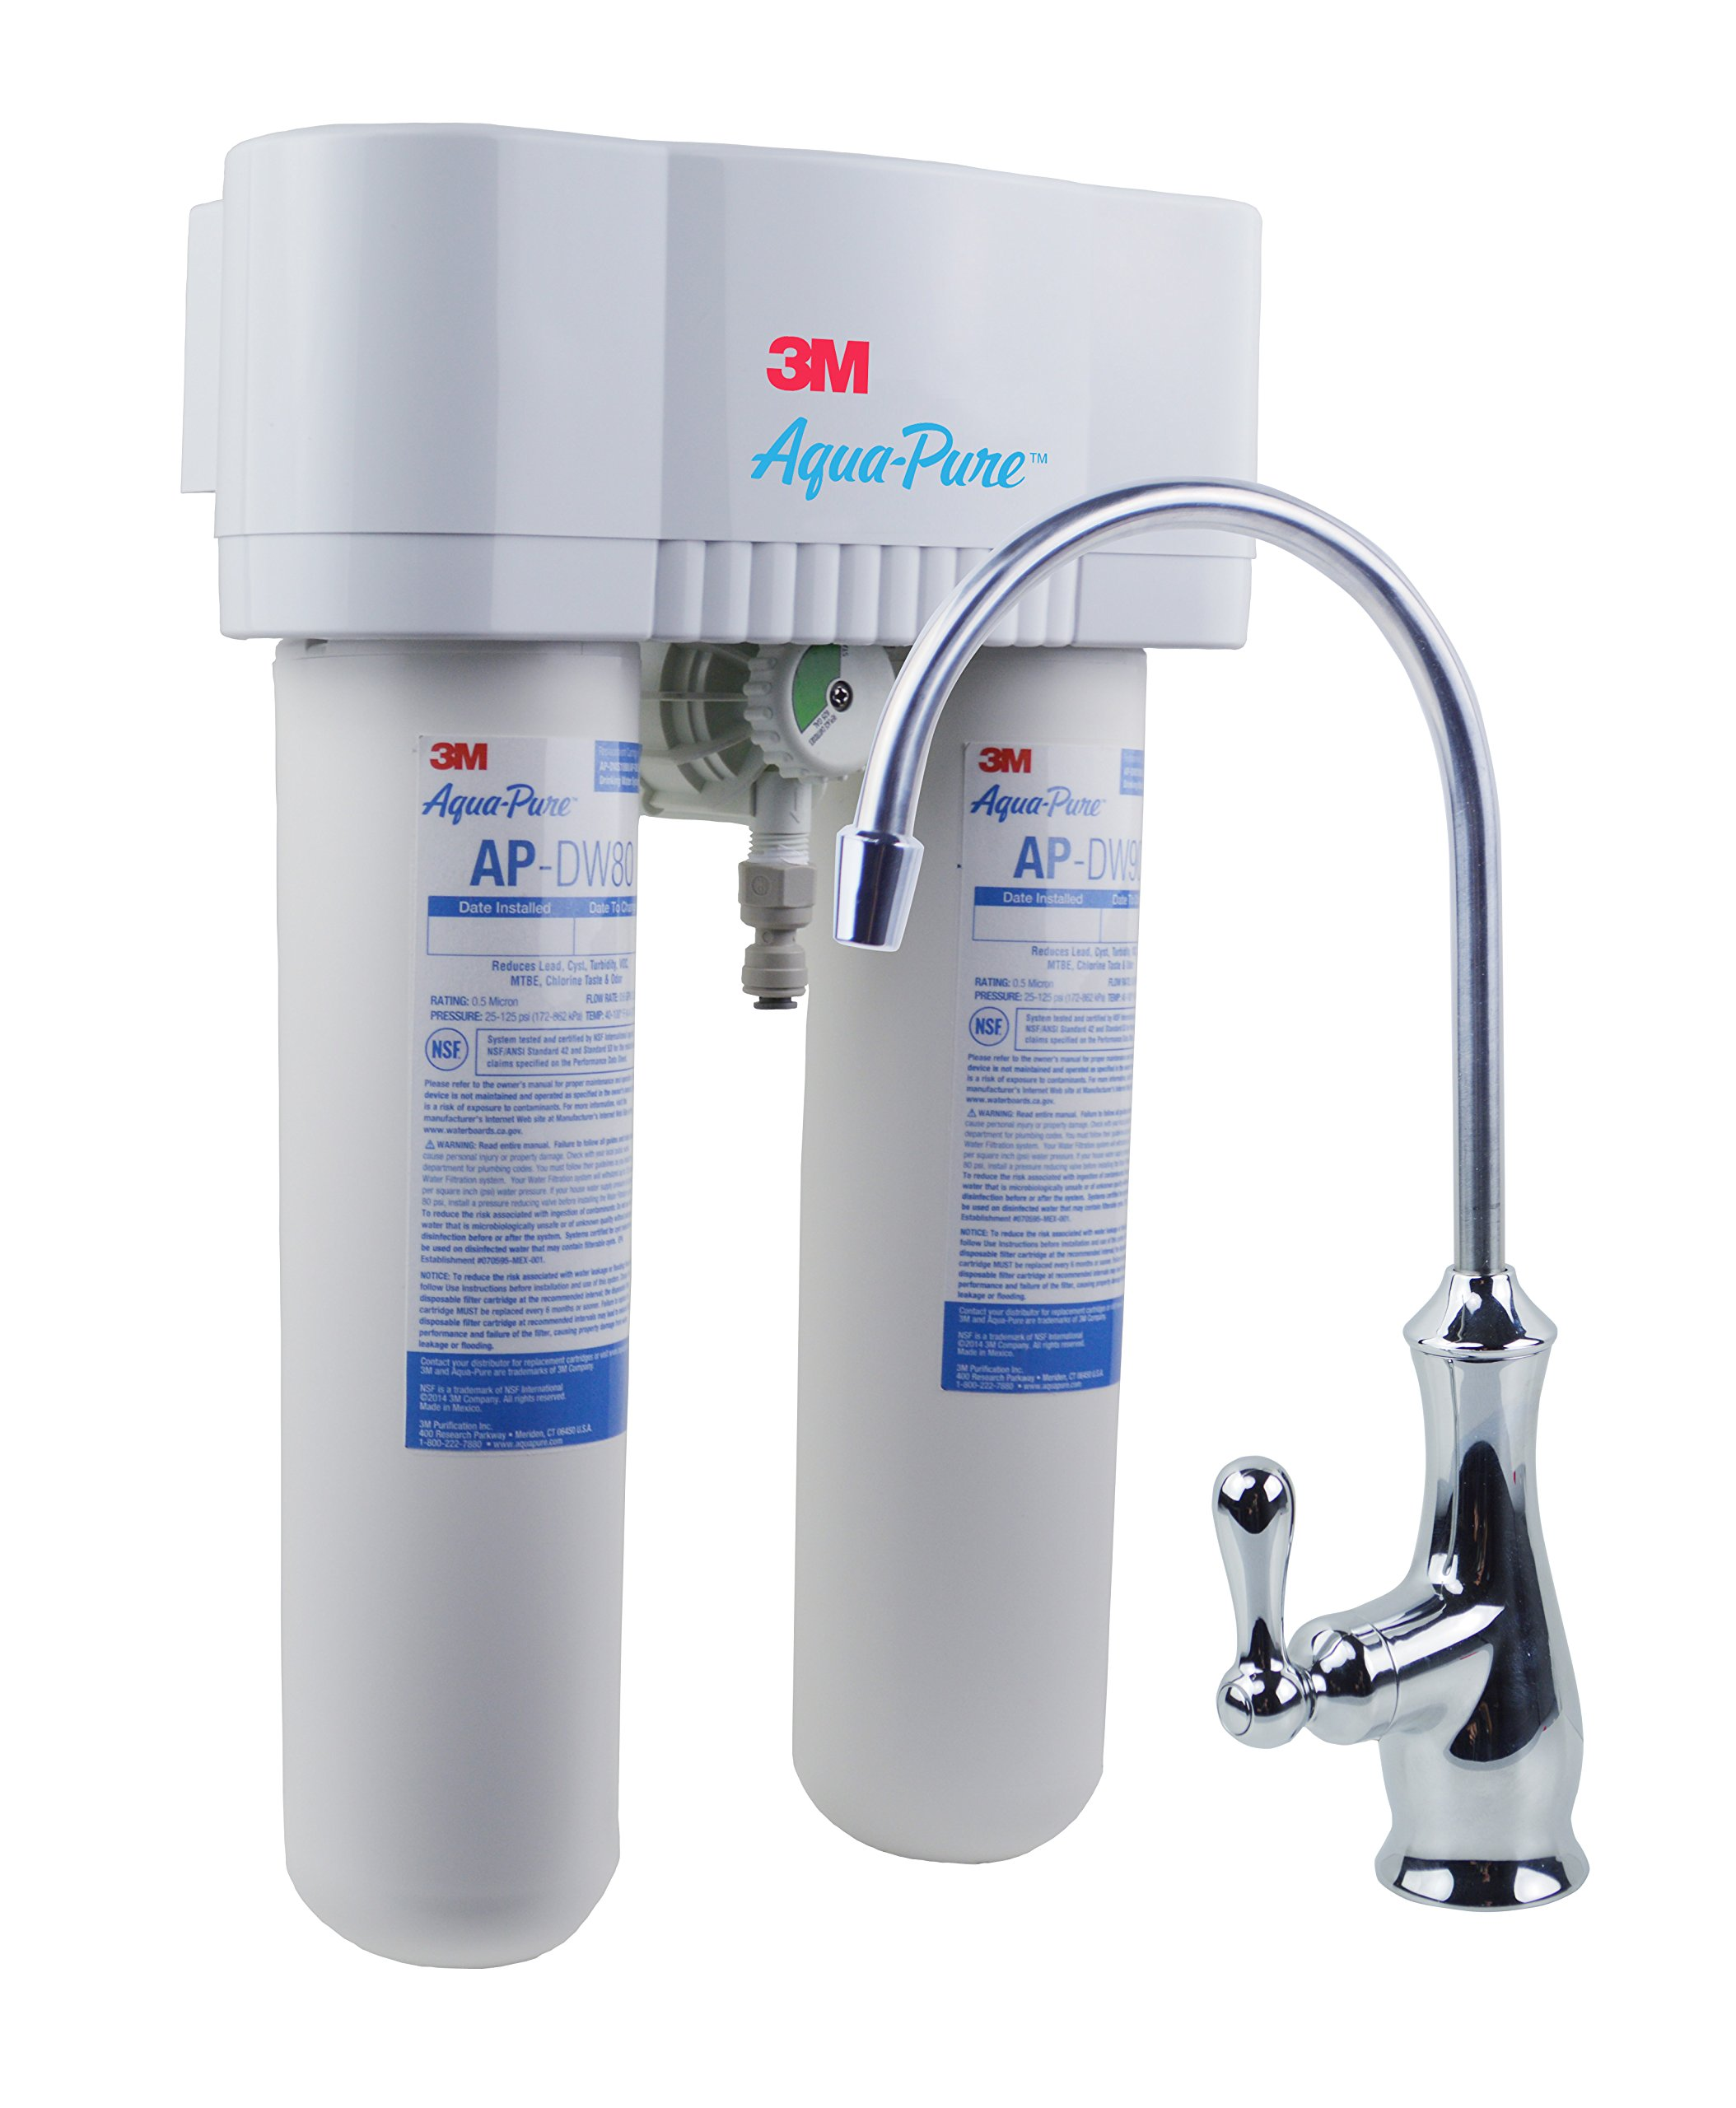 3M Aqua-Pure Under Sink Water Filtration System – Model AP-DWS1000 by 3M AquaPure